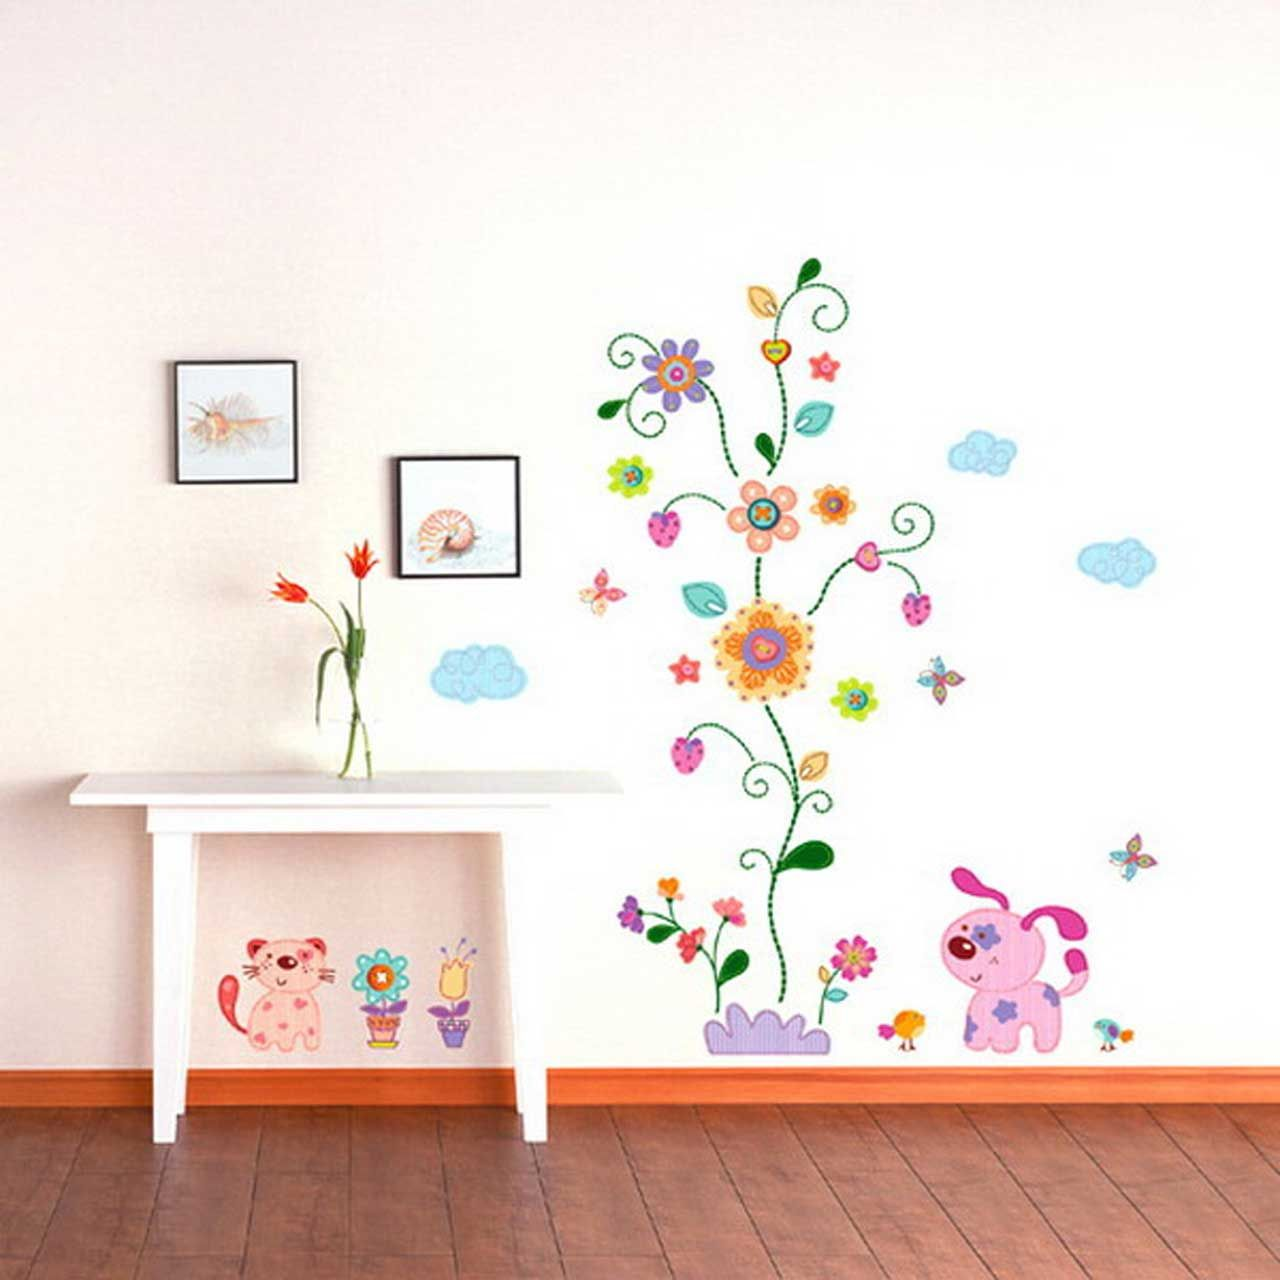 Beautiful kids room decorating design ideas with creative for Childrens bedroom wall designs